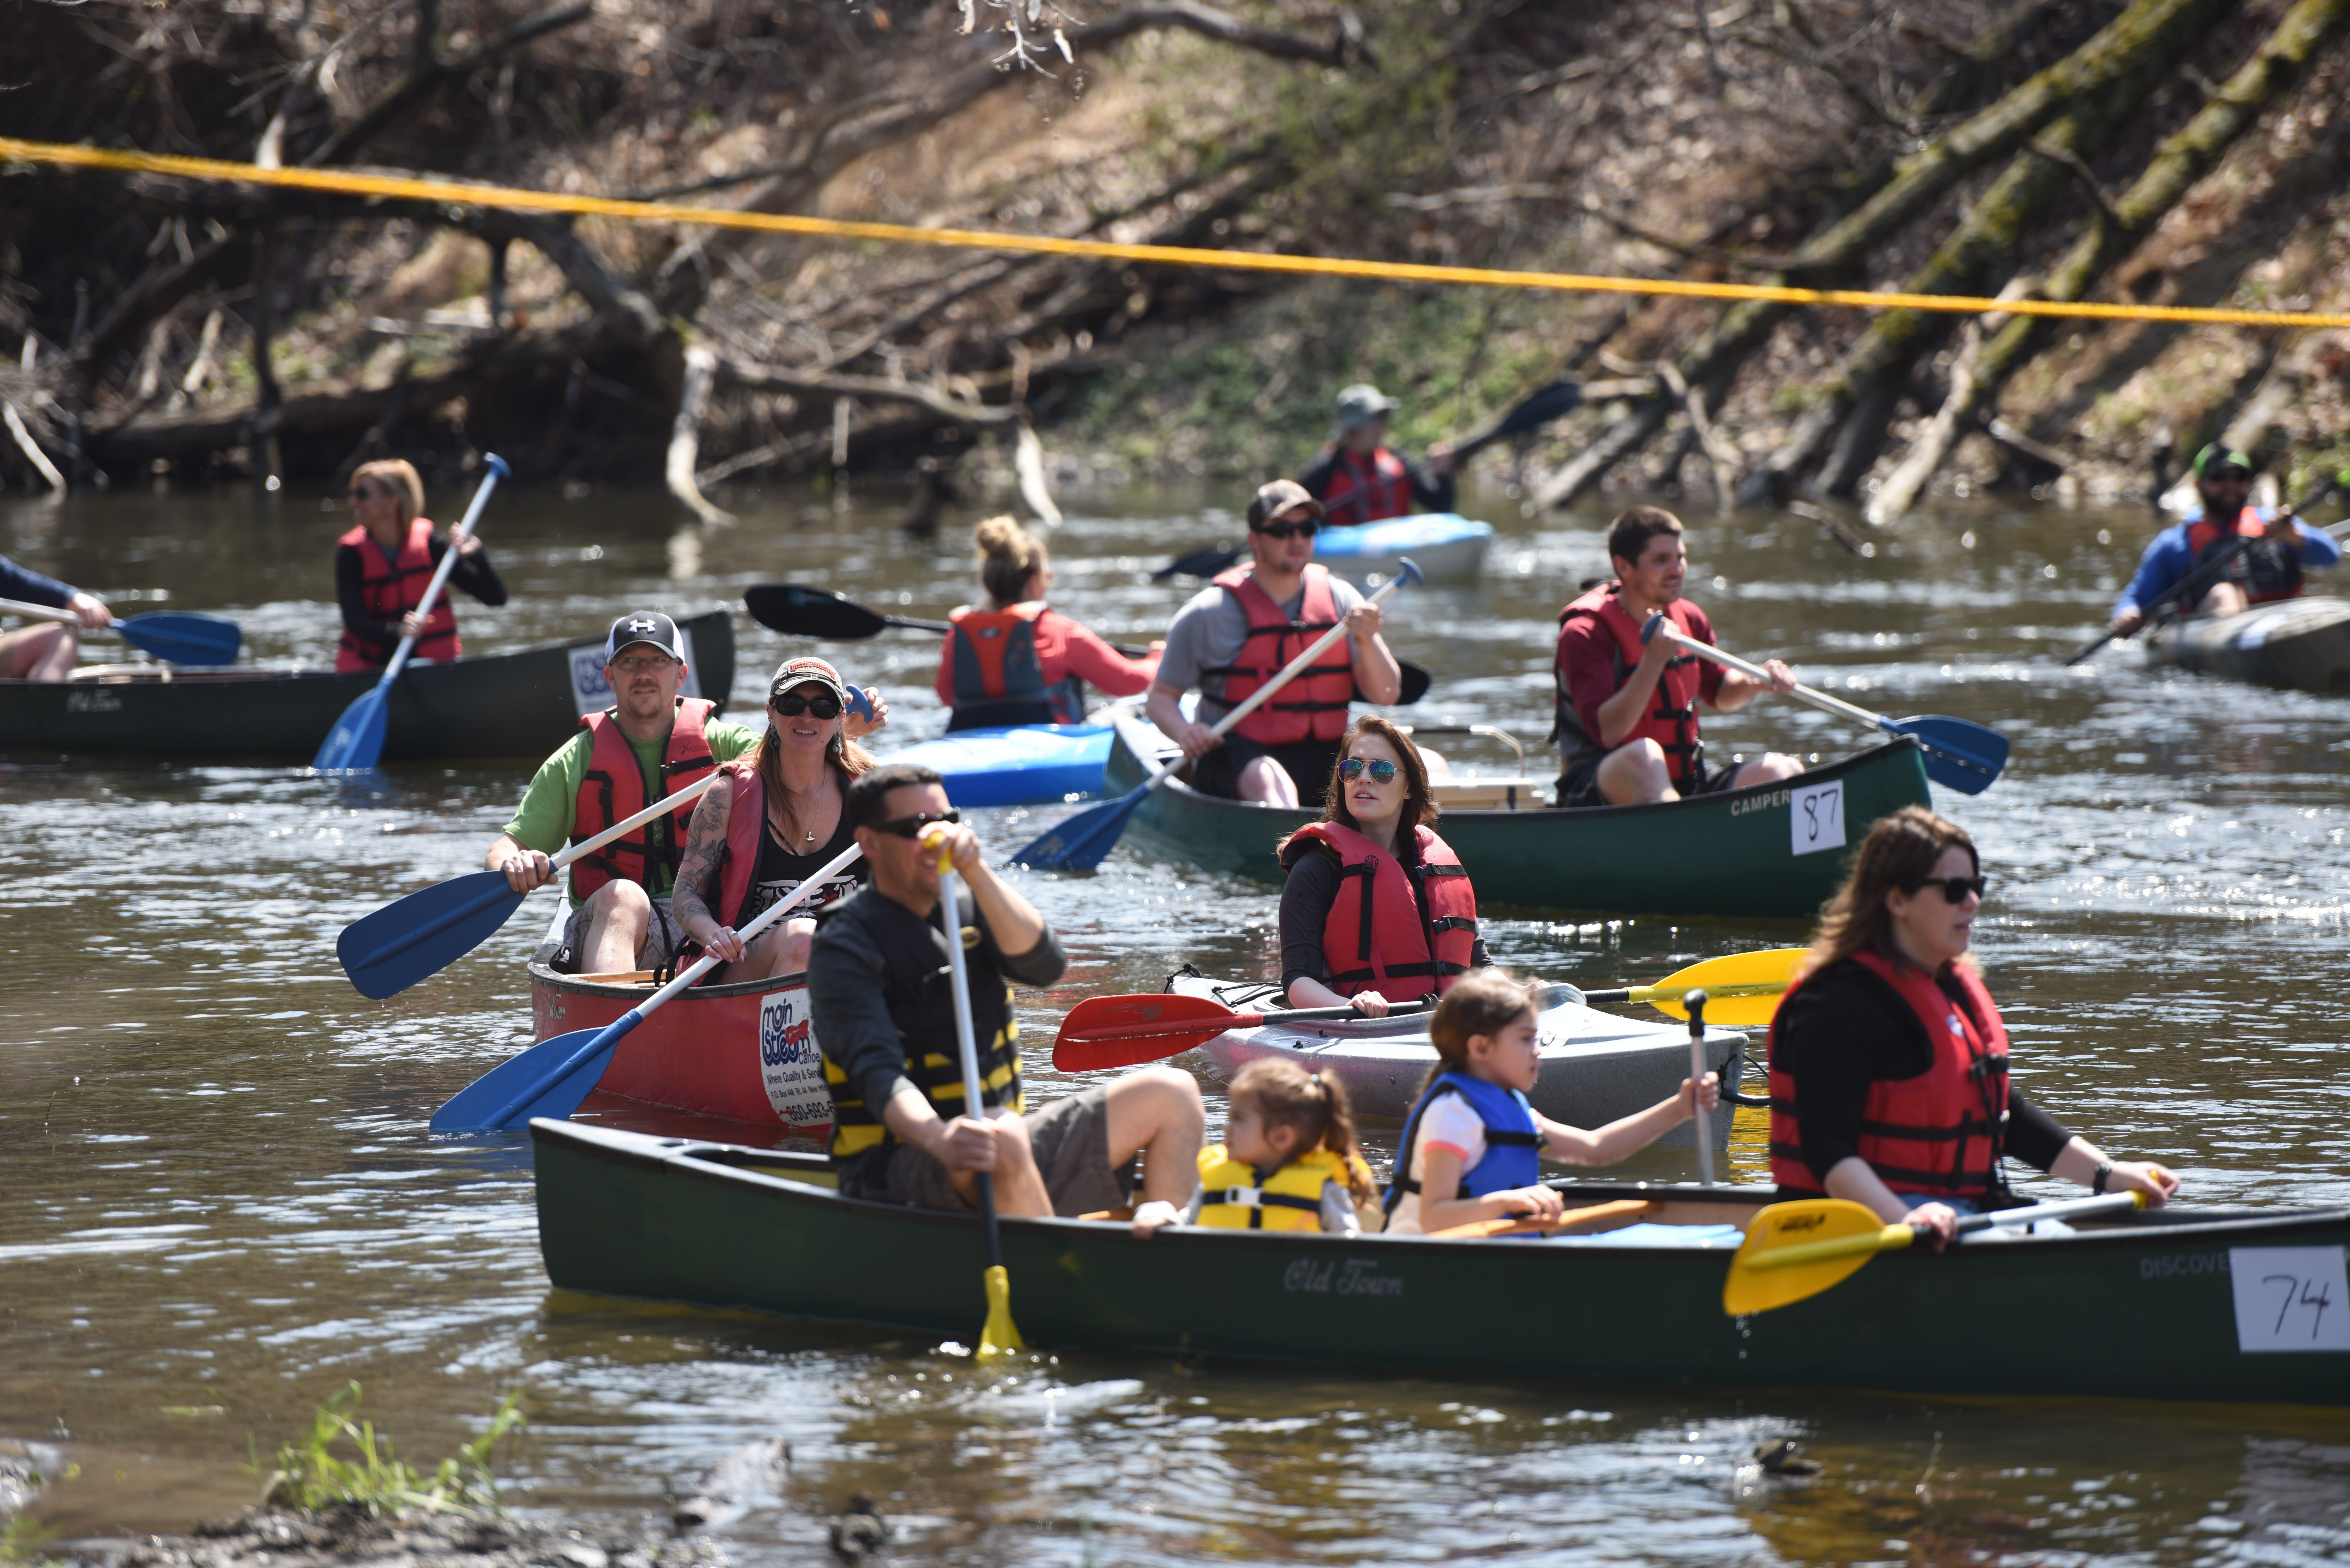 The 49th annual Wappingers Creek Water Derby will be held April 27.